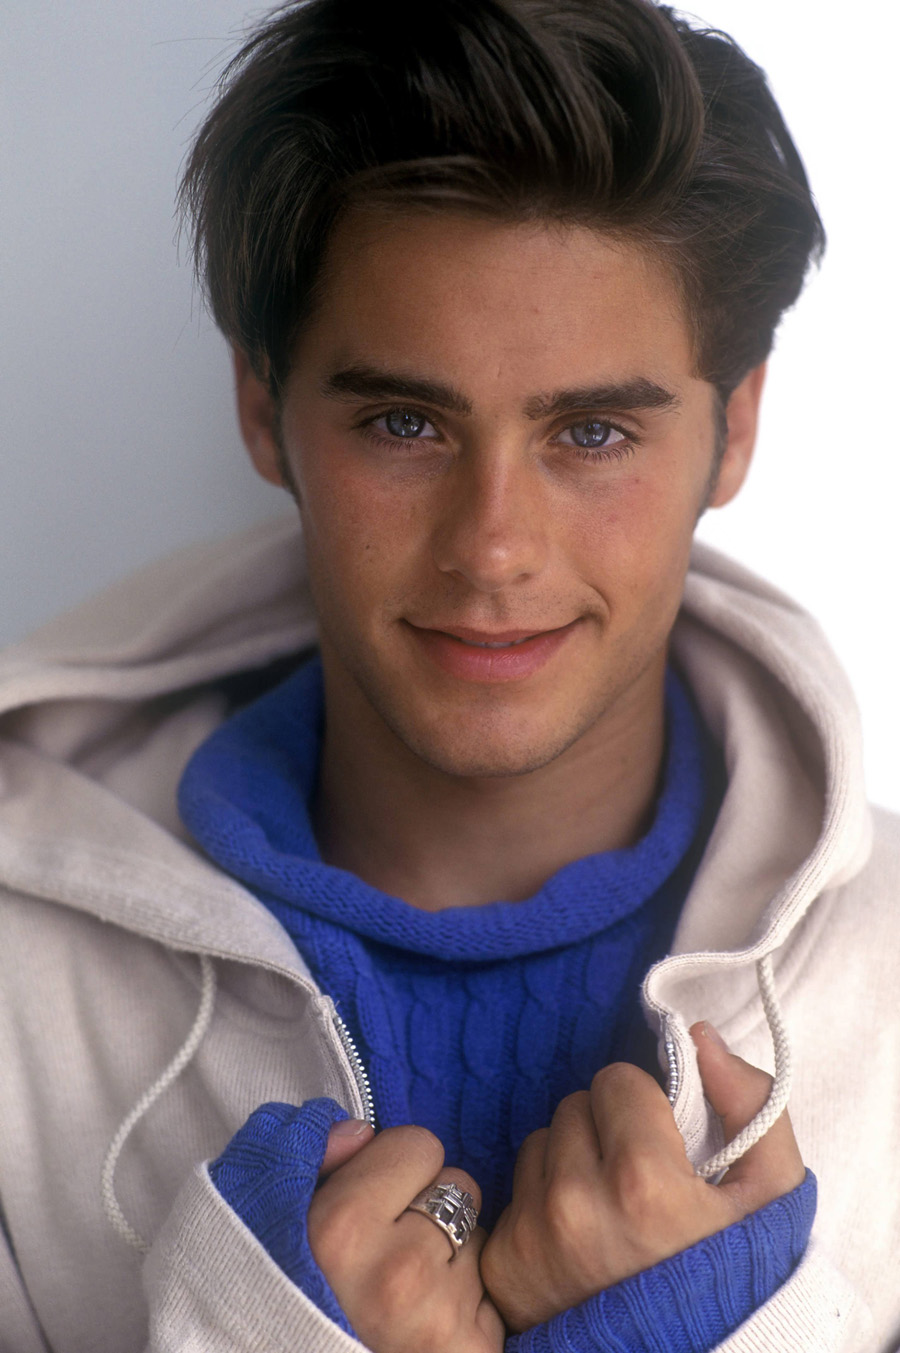 Jared Leto - Jared Leto Photo (29430245) - Fanpop fanclubs